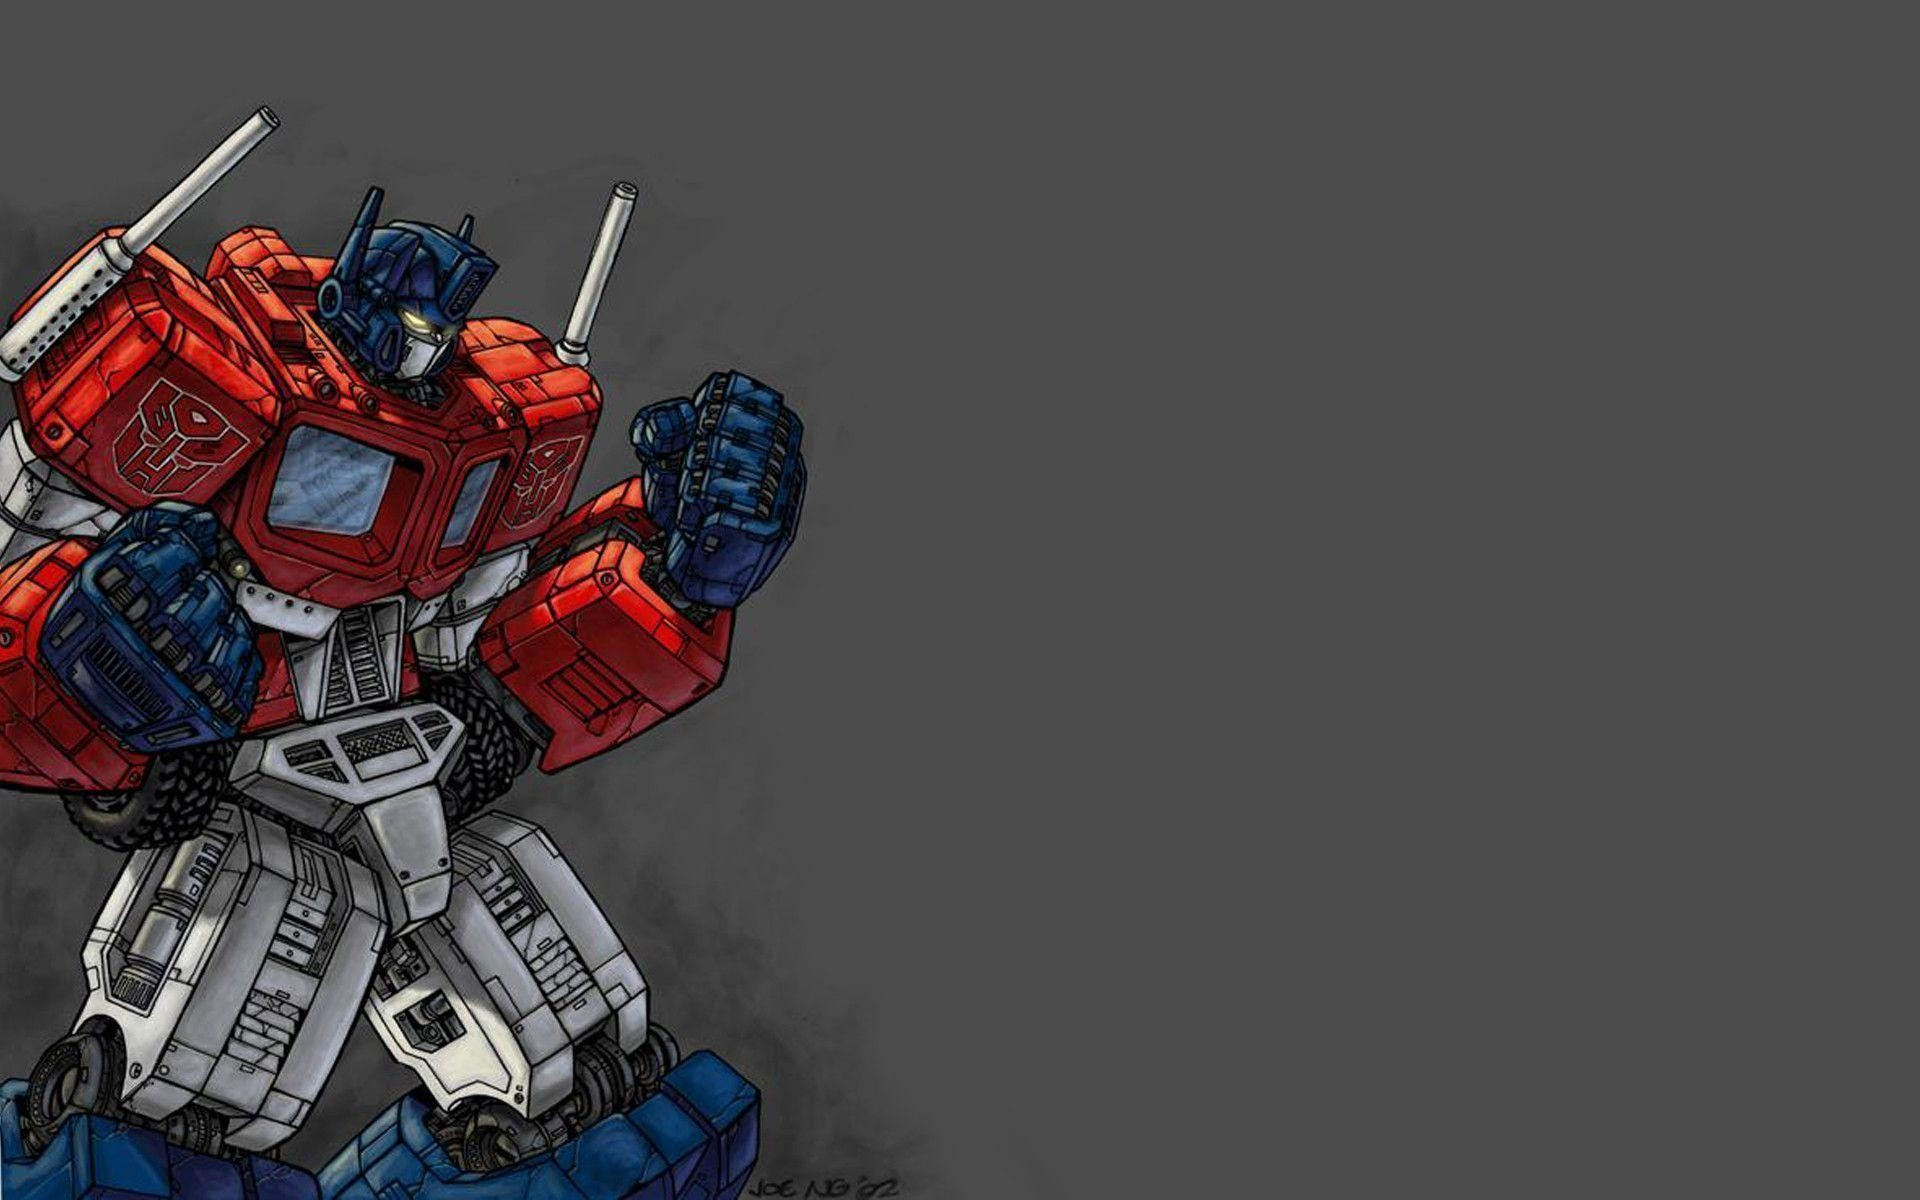 1920x1200 Optimus Prime Wallpaper by iPanic on DeviantArt